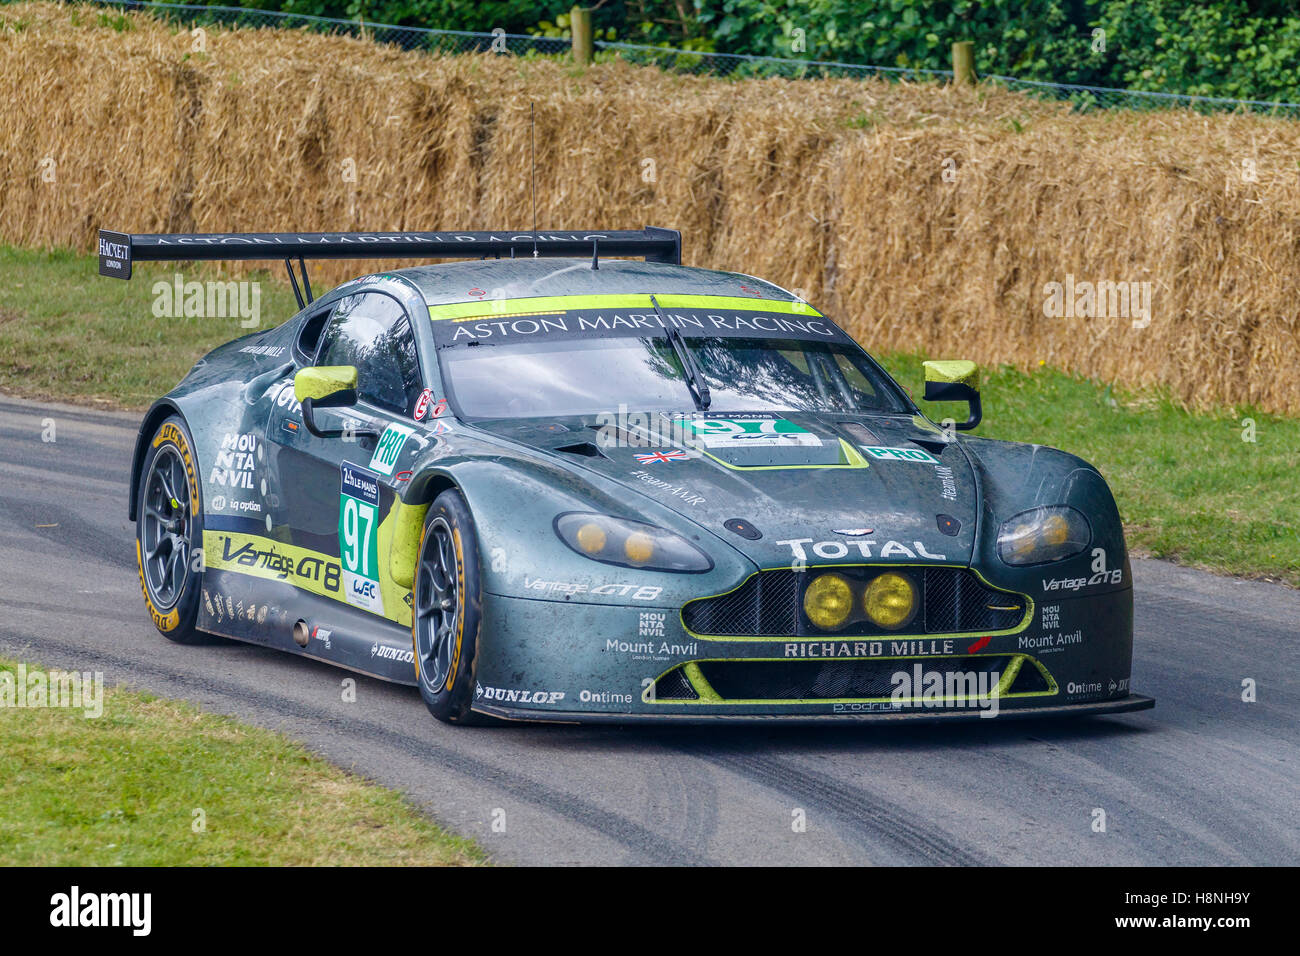 2016 aston martin v8 vantage gte with driver marco sorensen at the